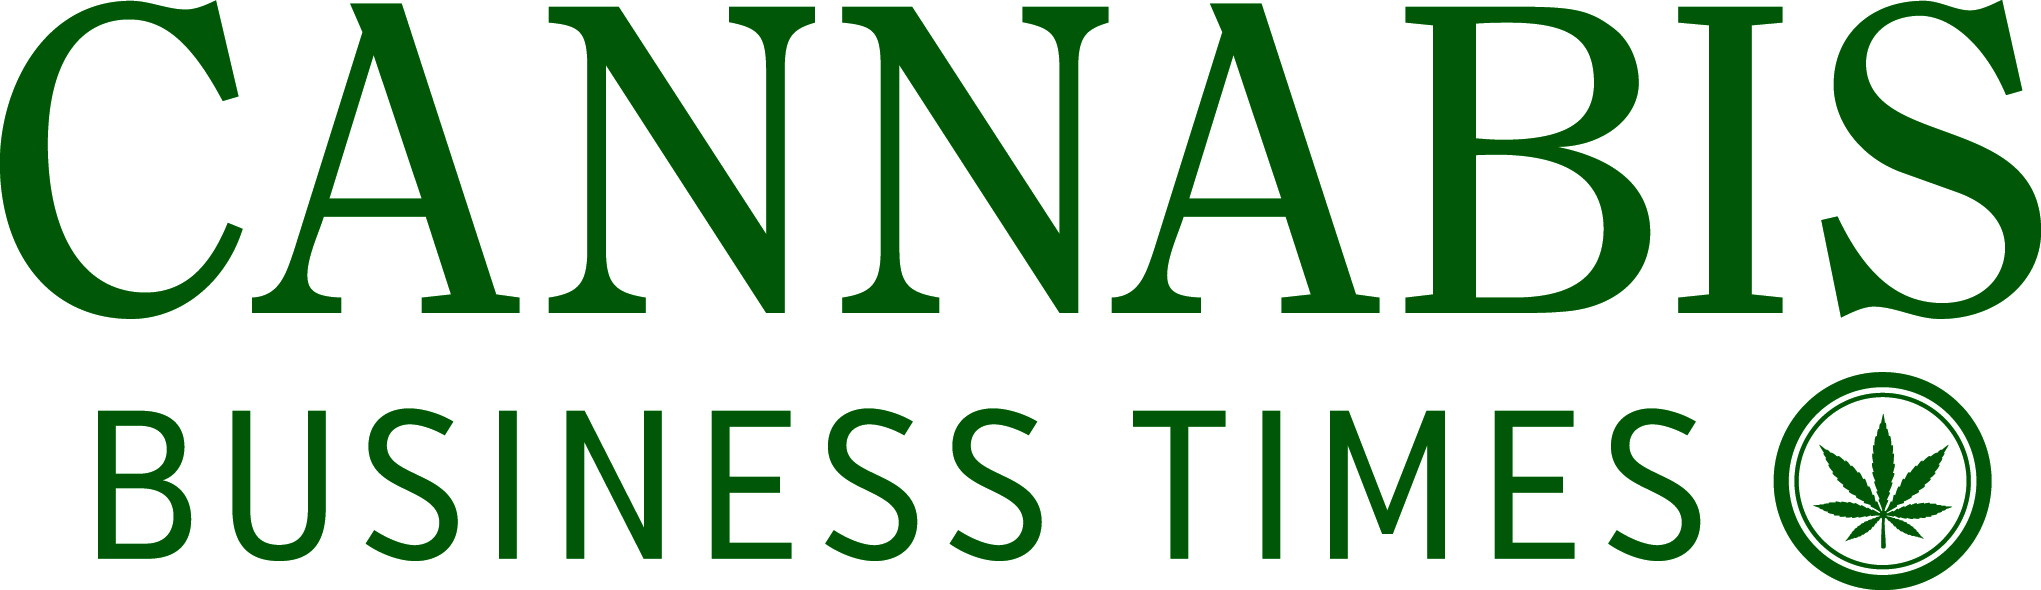 Cannabis Business Times - Covering everything a business and cultivator may need, from financial, to legal and more, CBT has information available to aid and encourage professionals to profit in their fields. They offer a comprehensive annual industry report, as well as several media outlets, including a regimented website, an e-newsletter, a mobile app, and even a printed magazine that was named Magazine of the Year in 2018 by the American Society of Business Publication Editors.